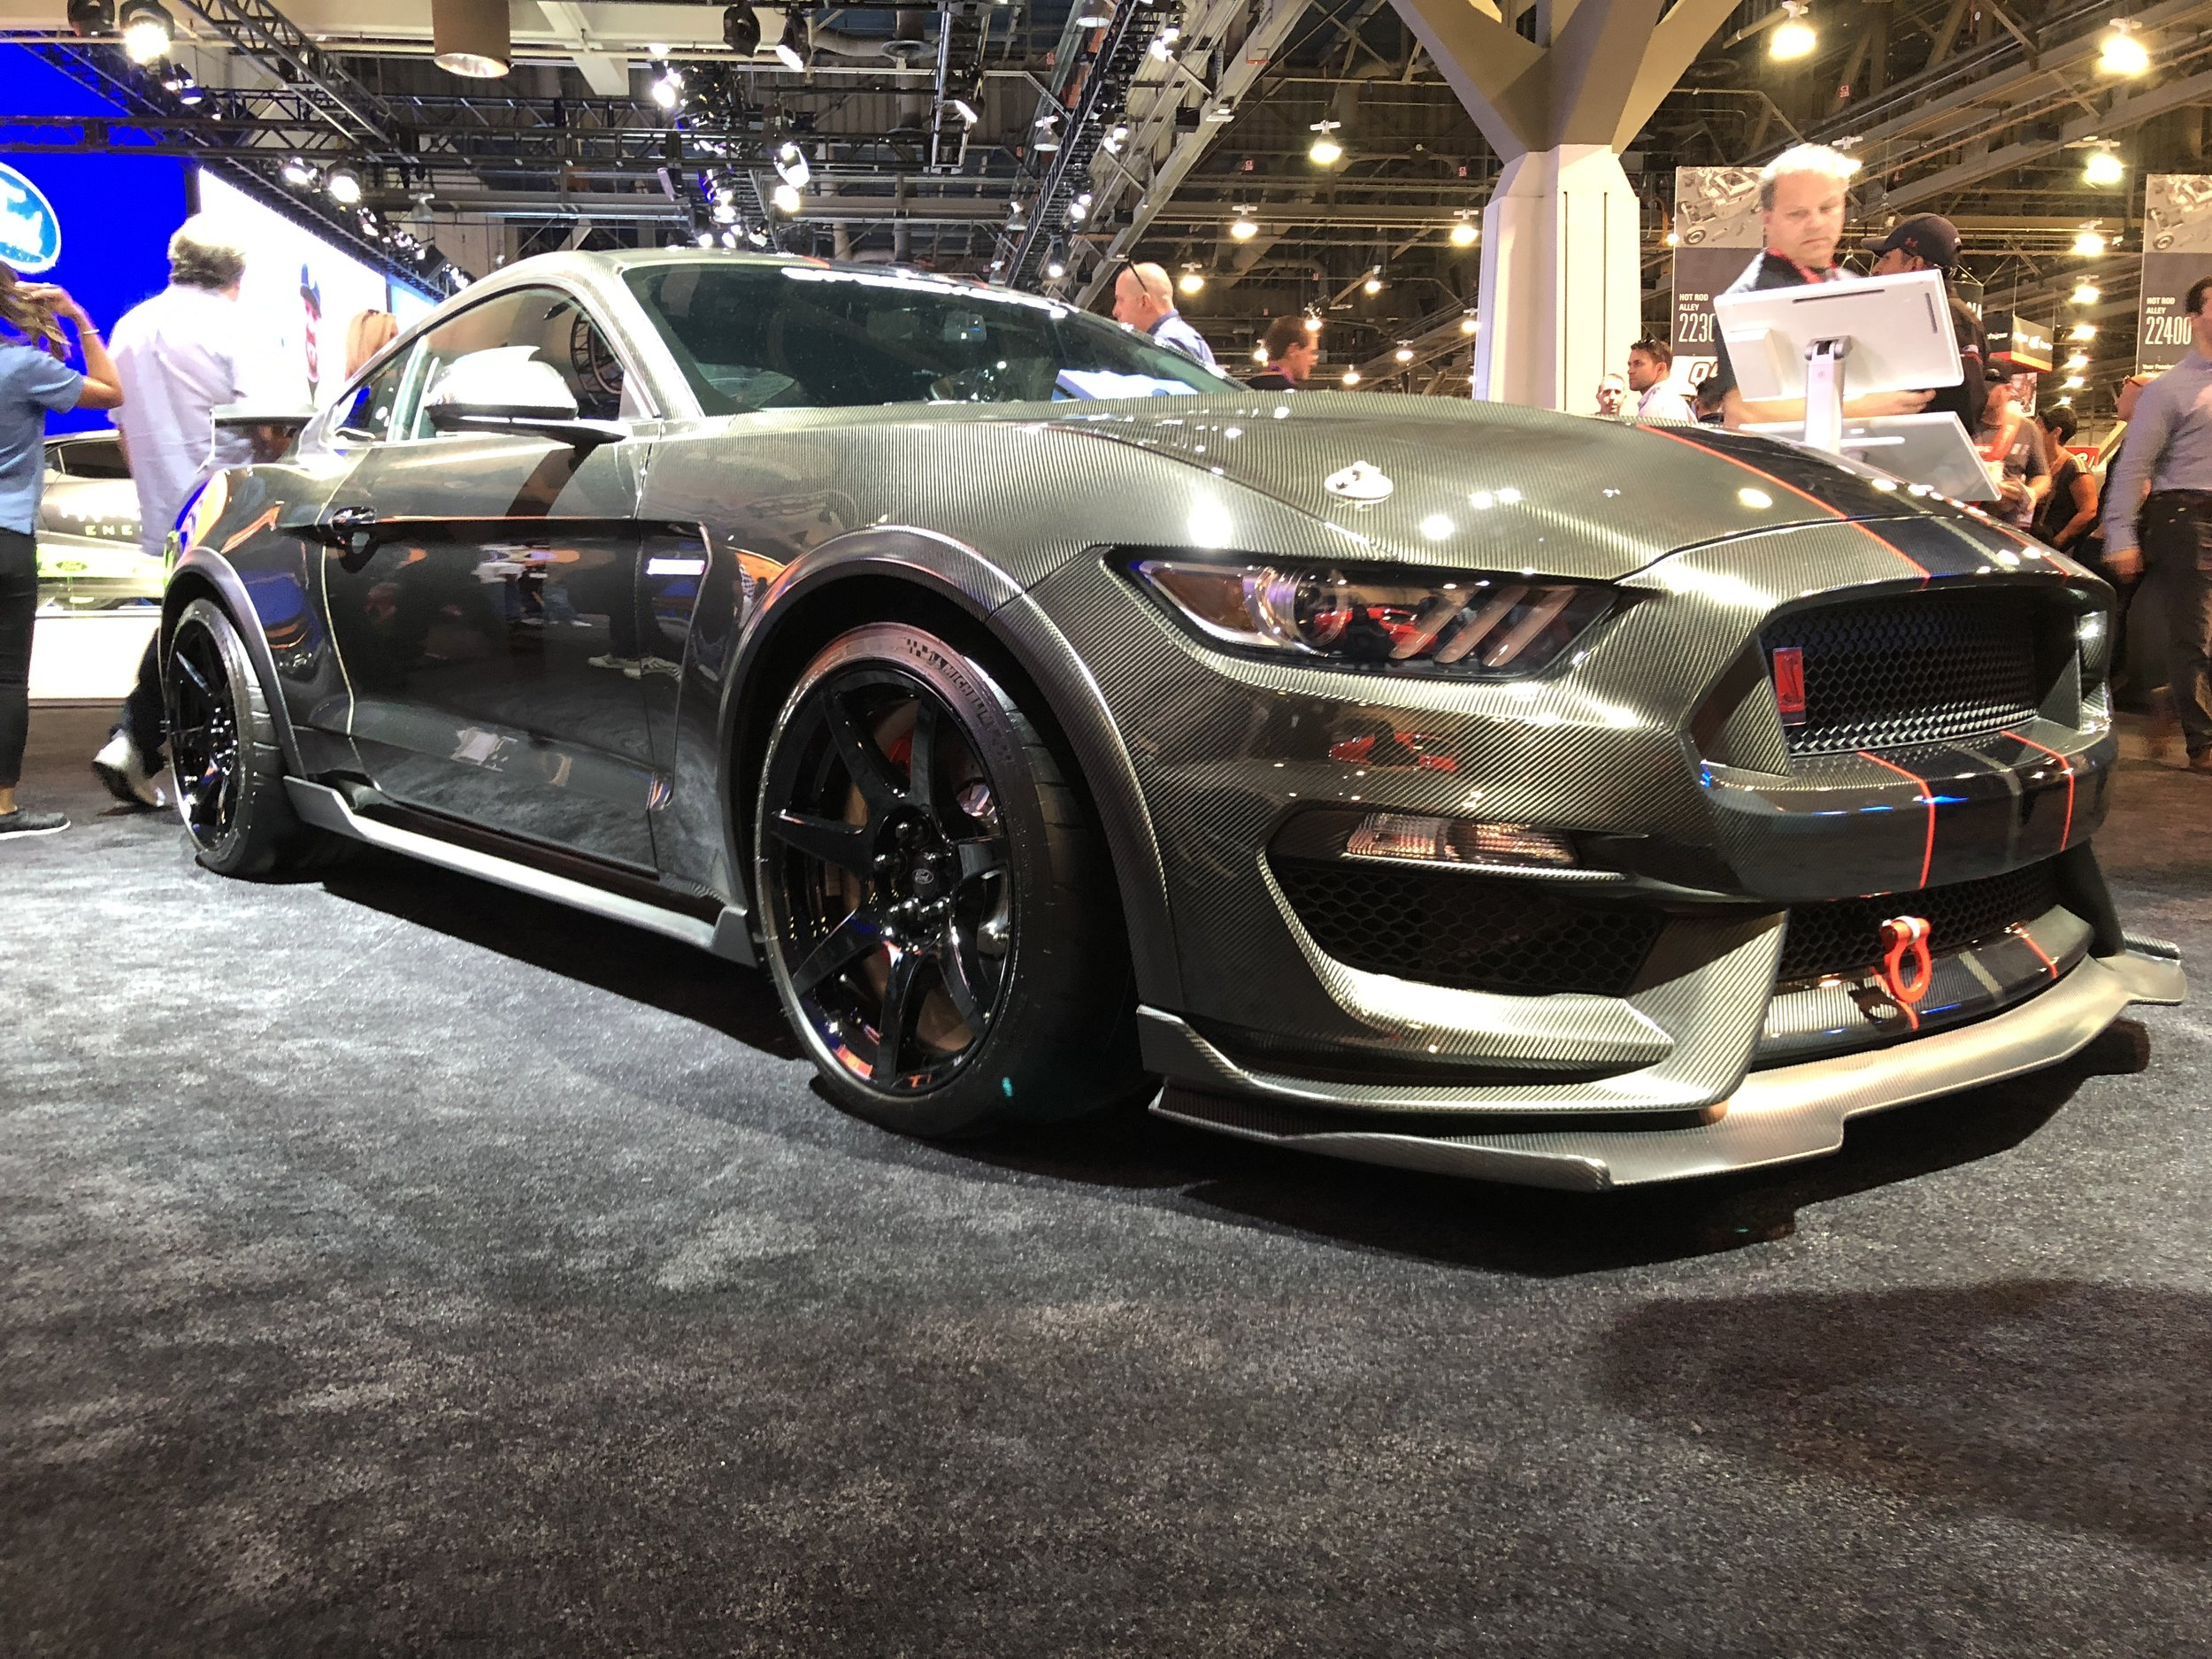 Ford had this beauty on display in their booth and for good reason! SpeedKore (a manufacturer of carbon fiber parts) outfitted this GT350 with a complete carbon fiber body. This isn't something you see every day so it earned a spot on our Top 5 list.